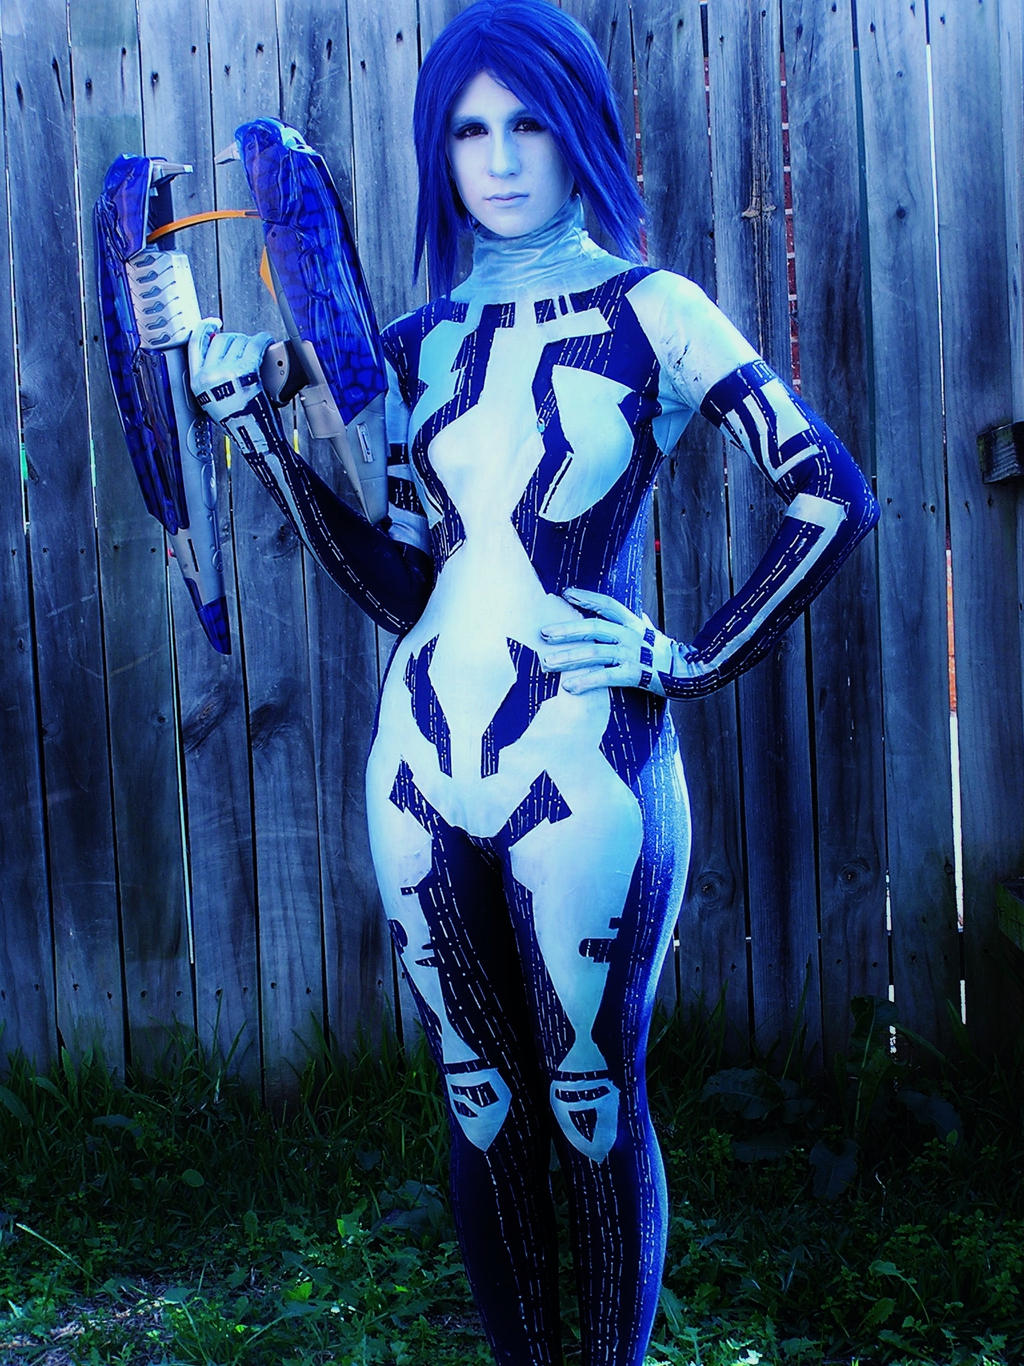 Cortana henitai videos anime photo